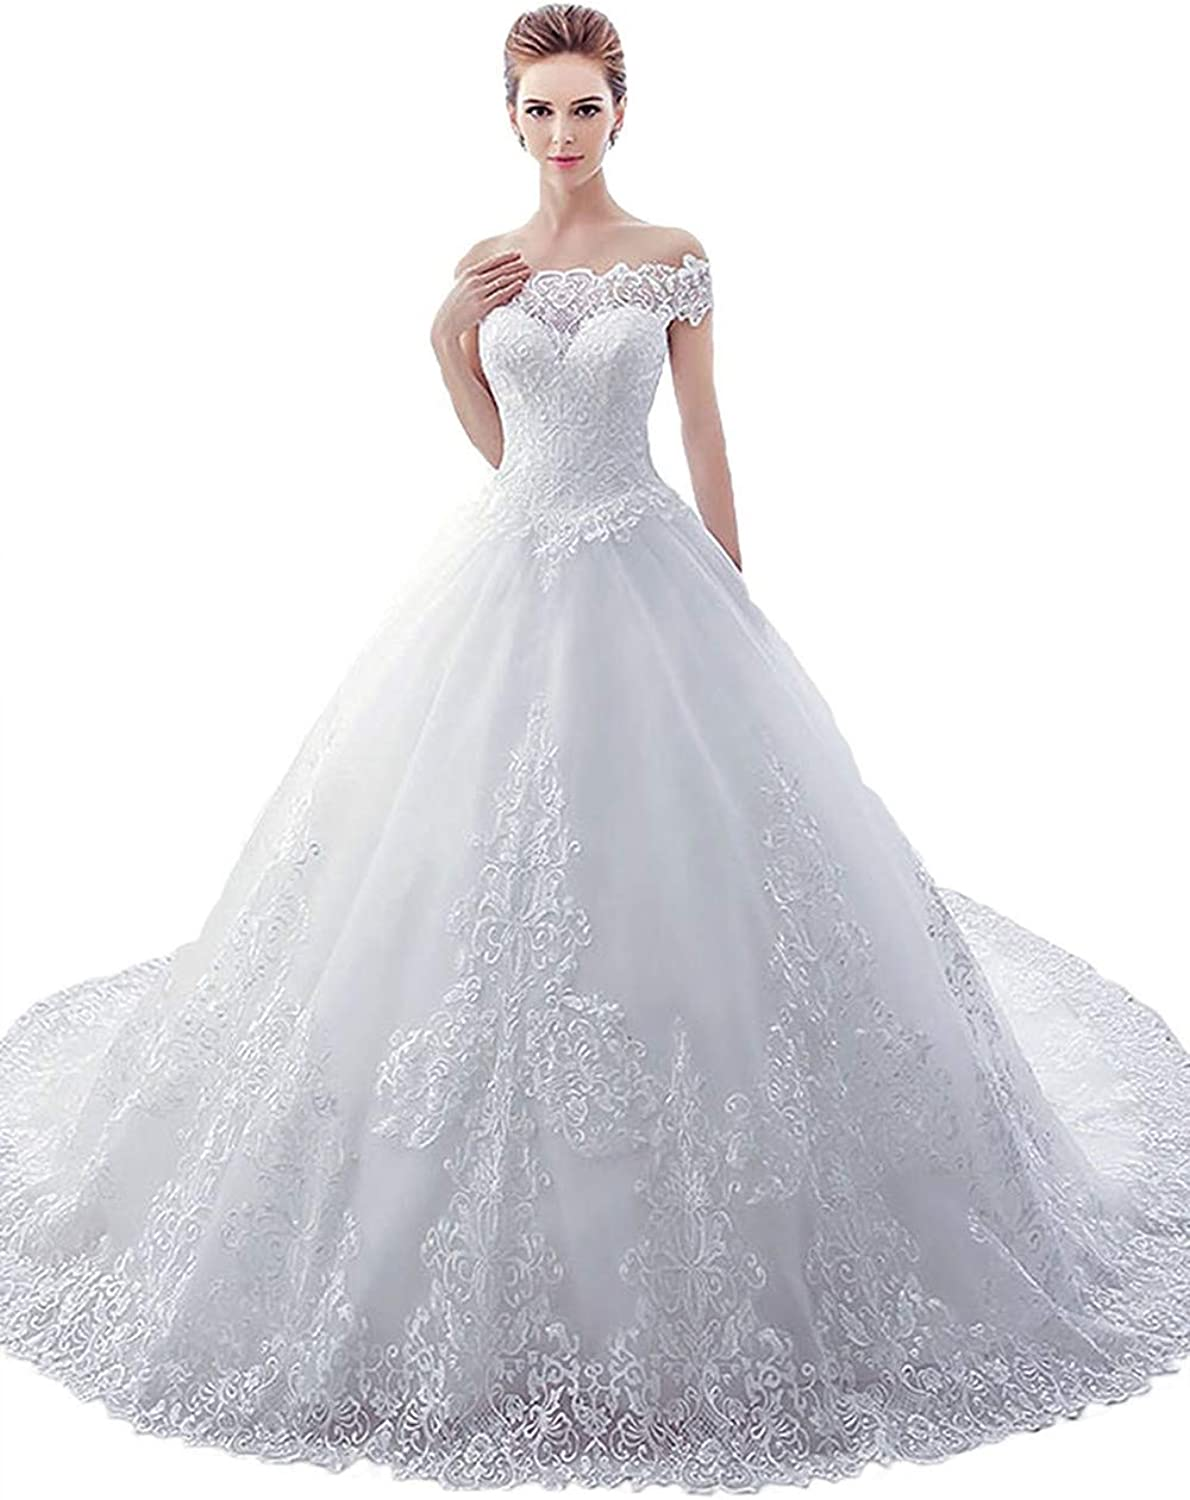 Huifany Women's Off Shoulder Ball Gown Lace Wedding Dress Bridal Gowns Sweep Train